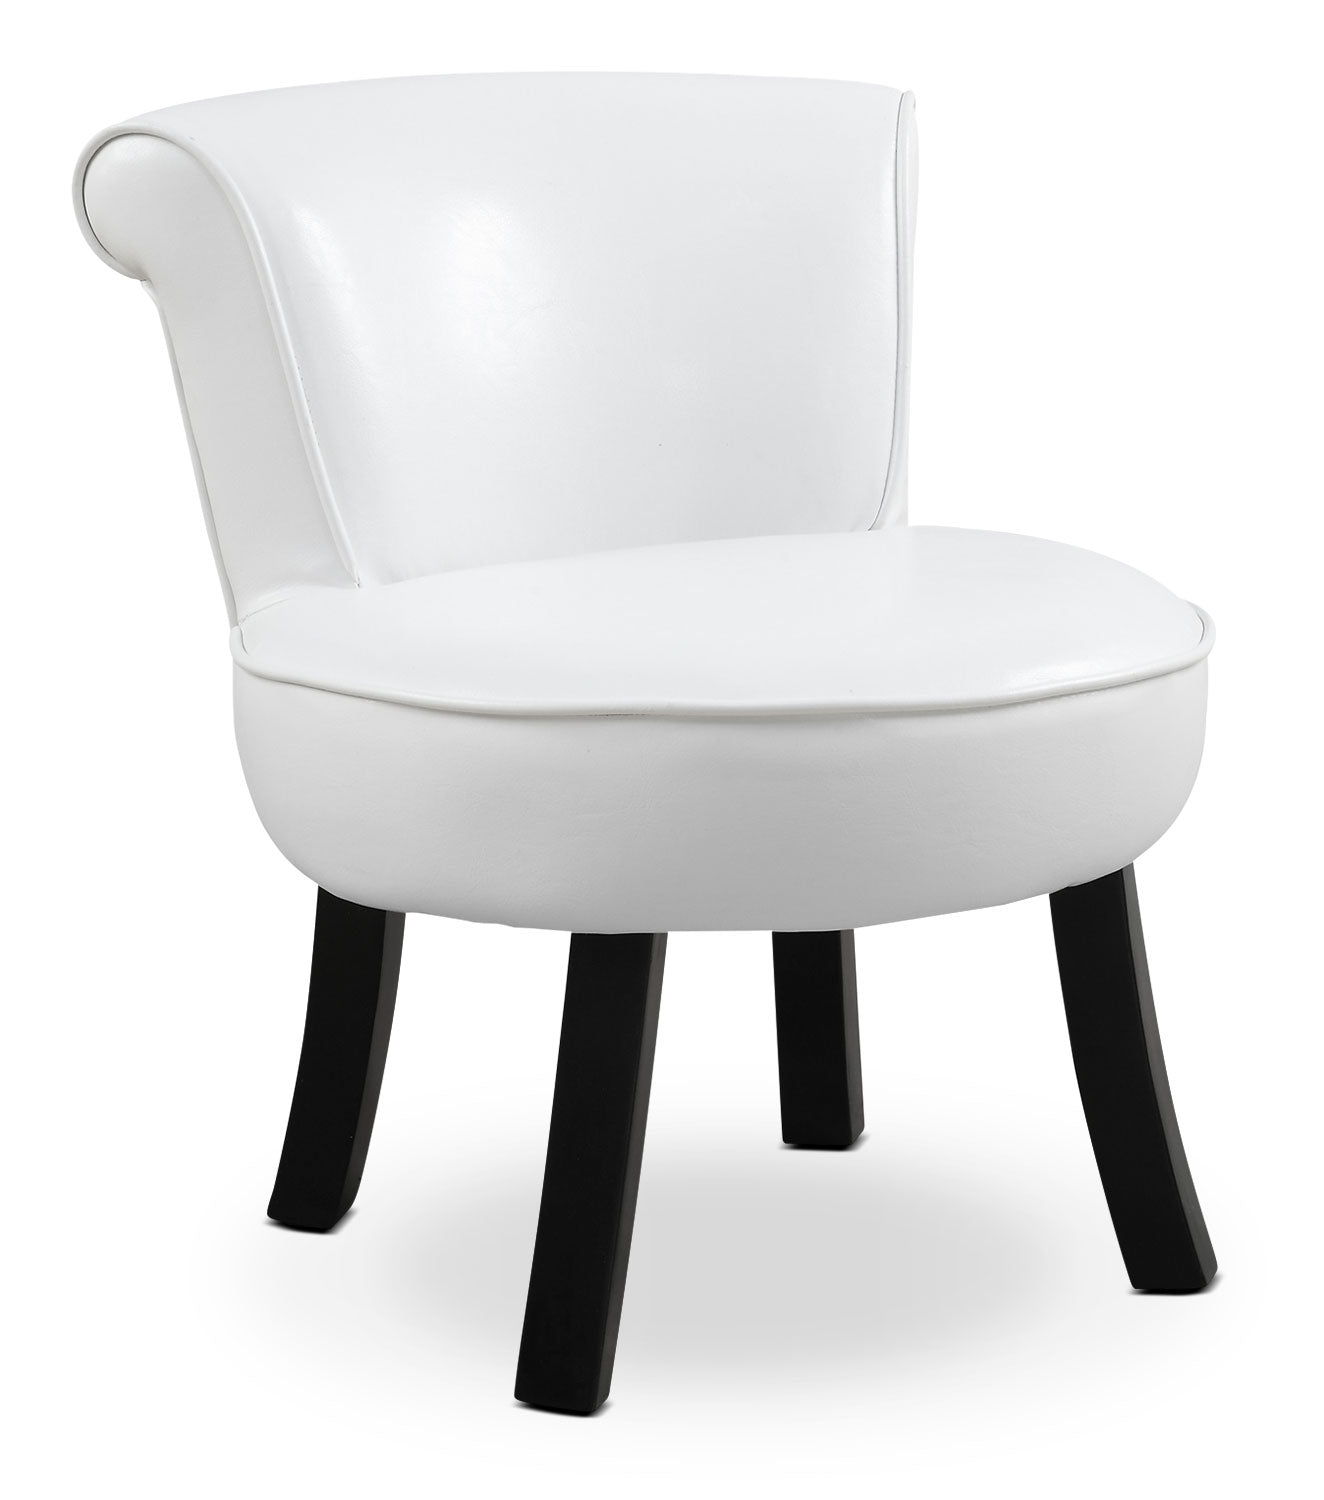 Stupendous Monarch Childrens Accent Chair White Gamerscity Chair Design For Home Gamerscityorg